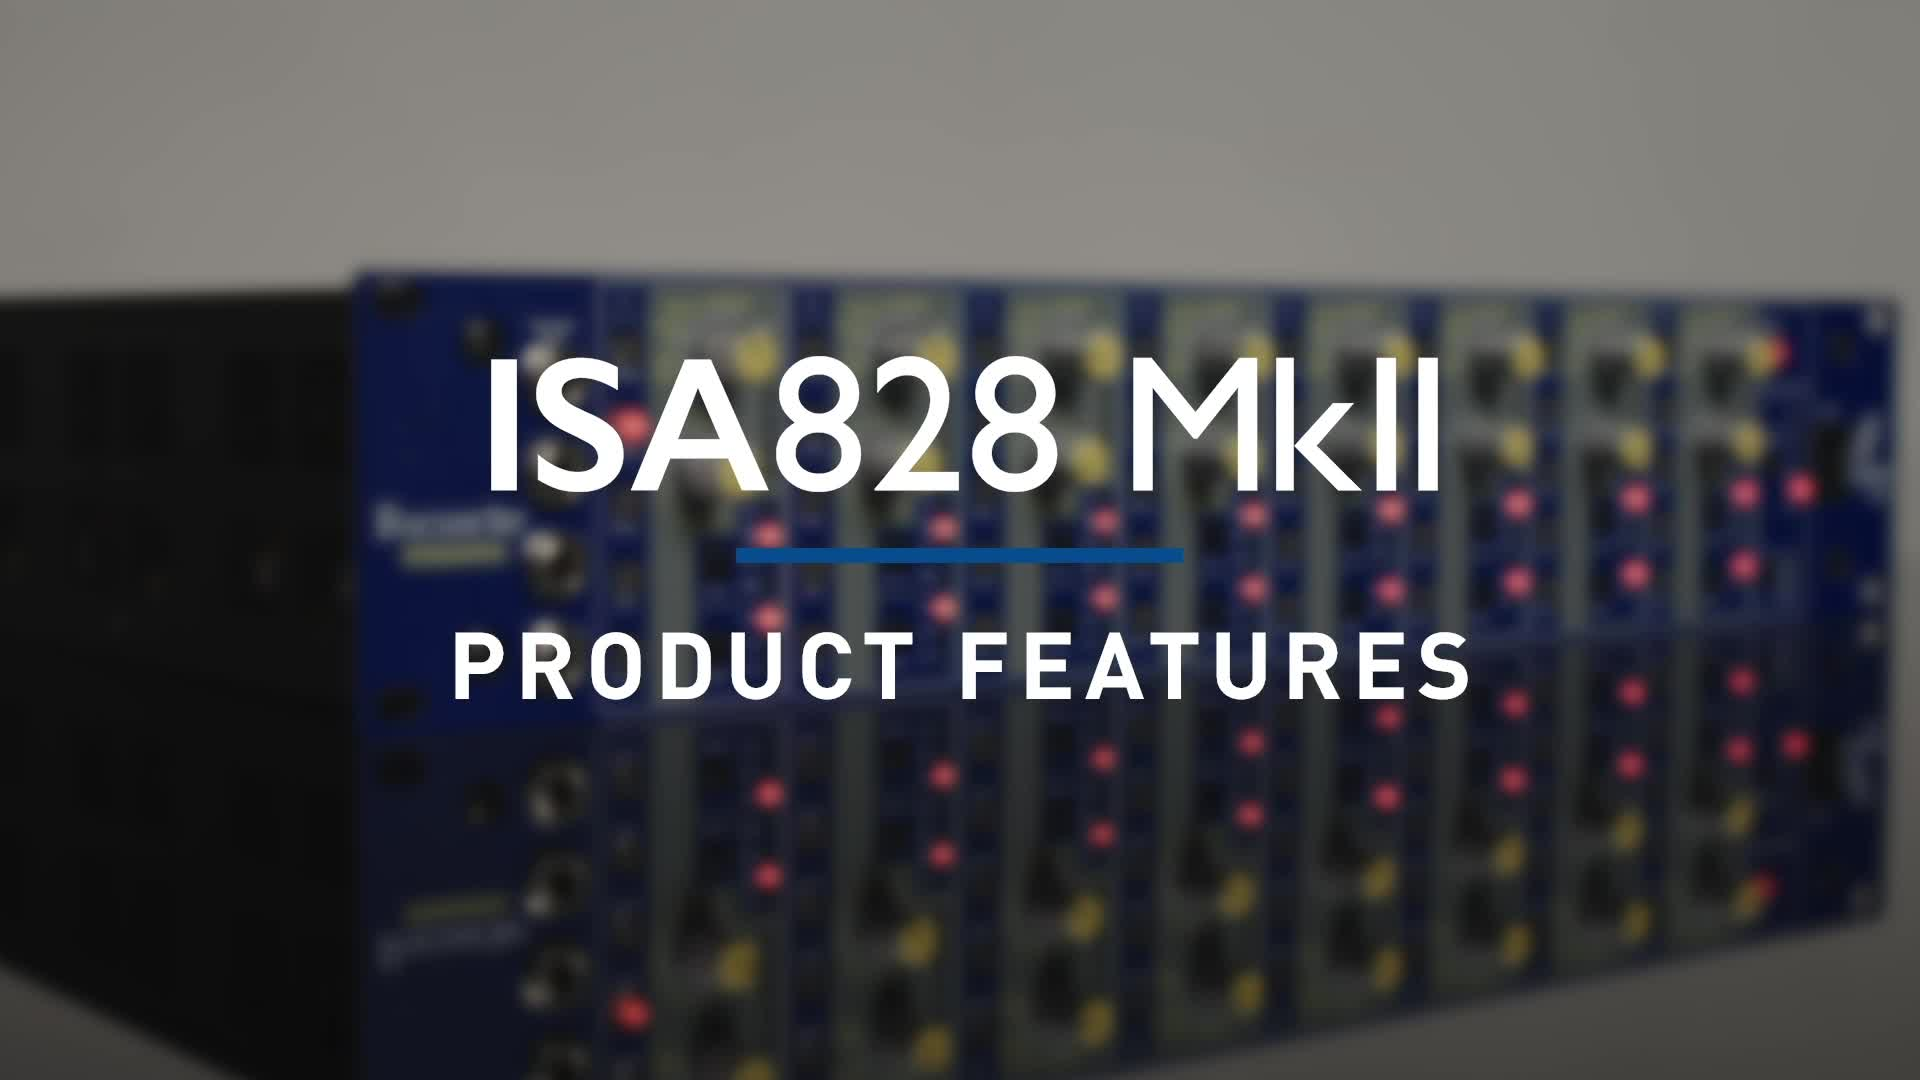 Focusrite - ISA828 MKII Overview